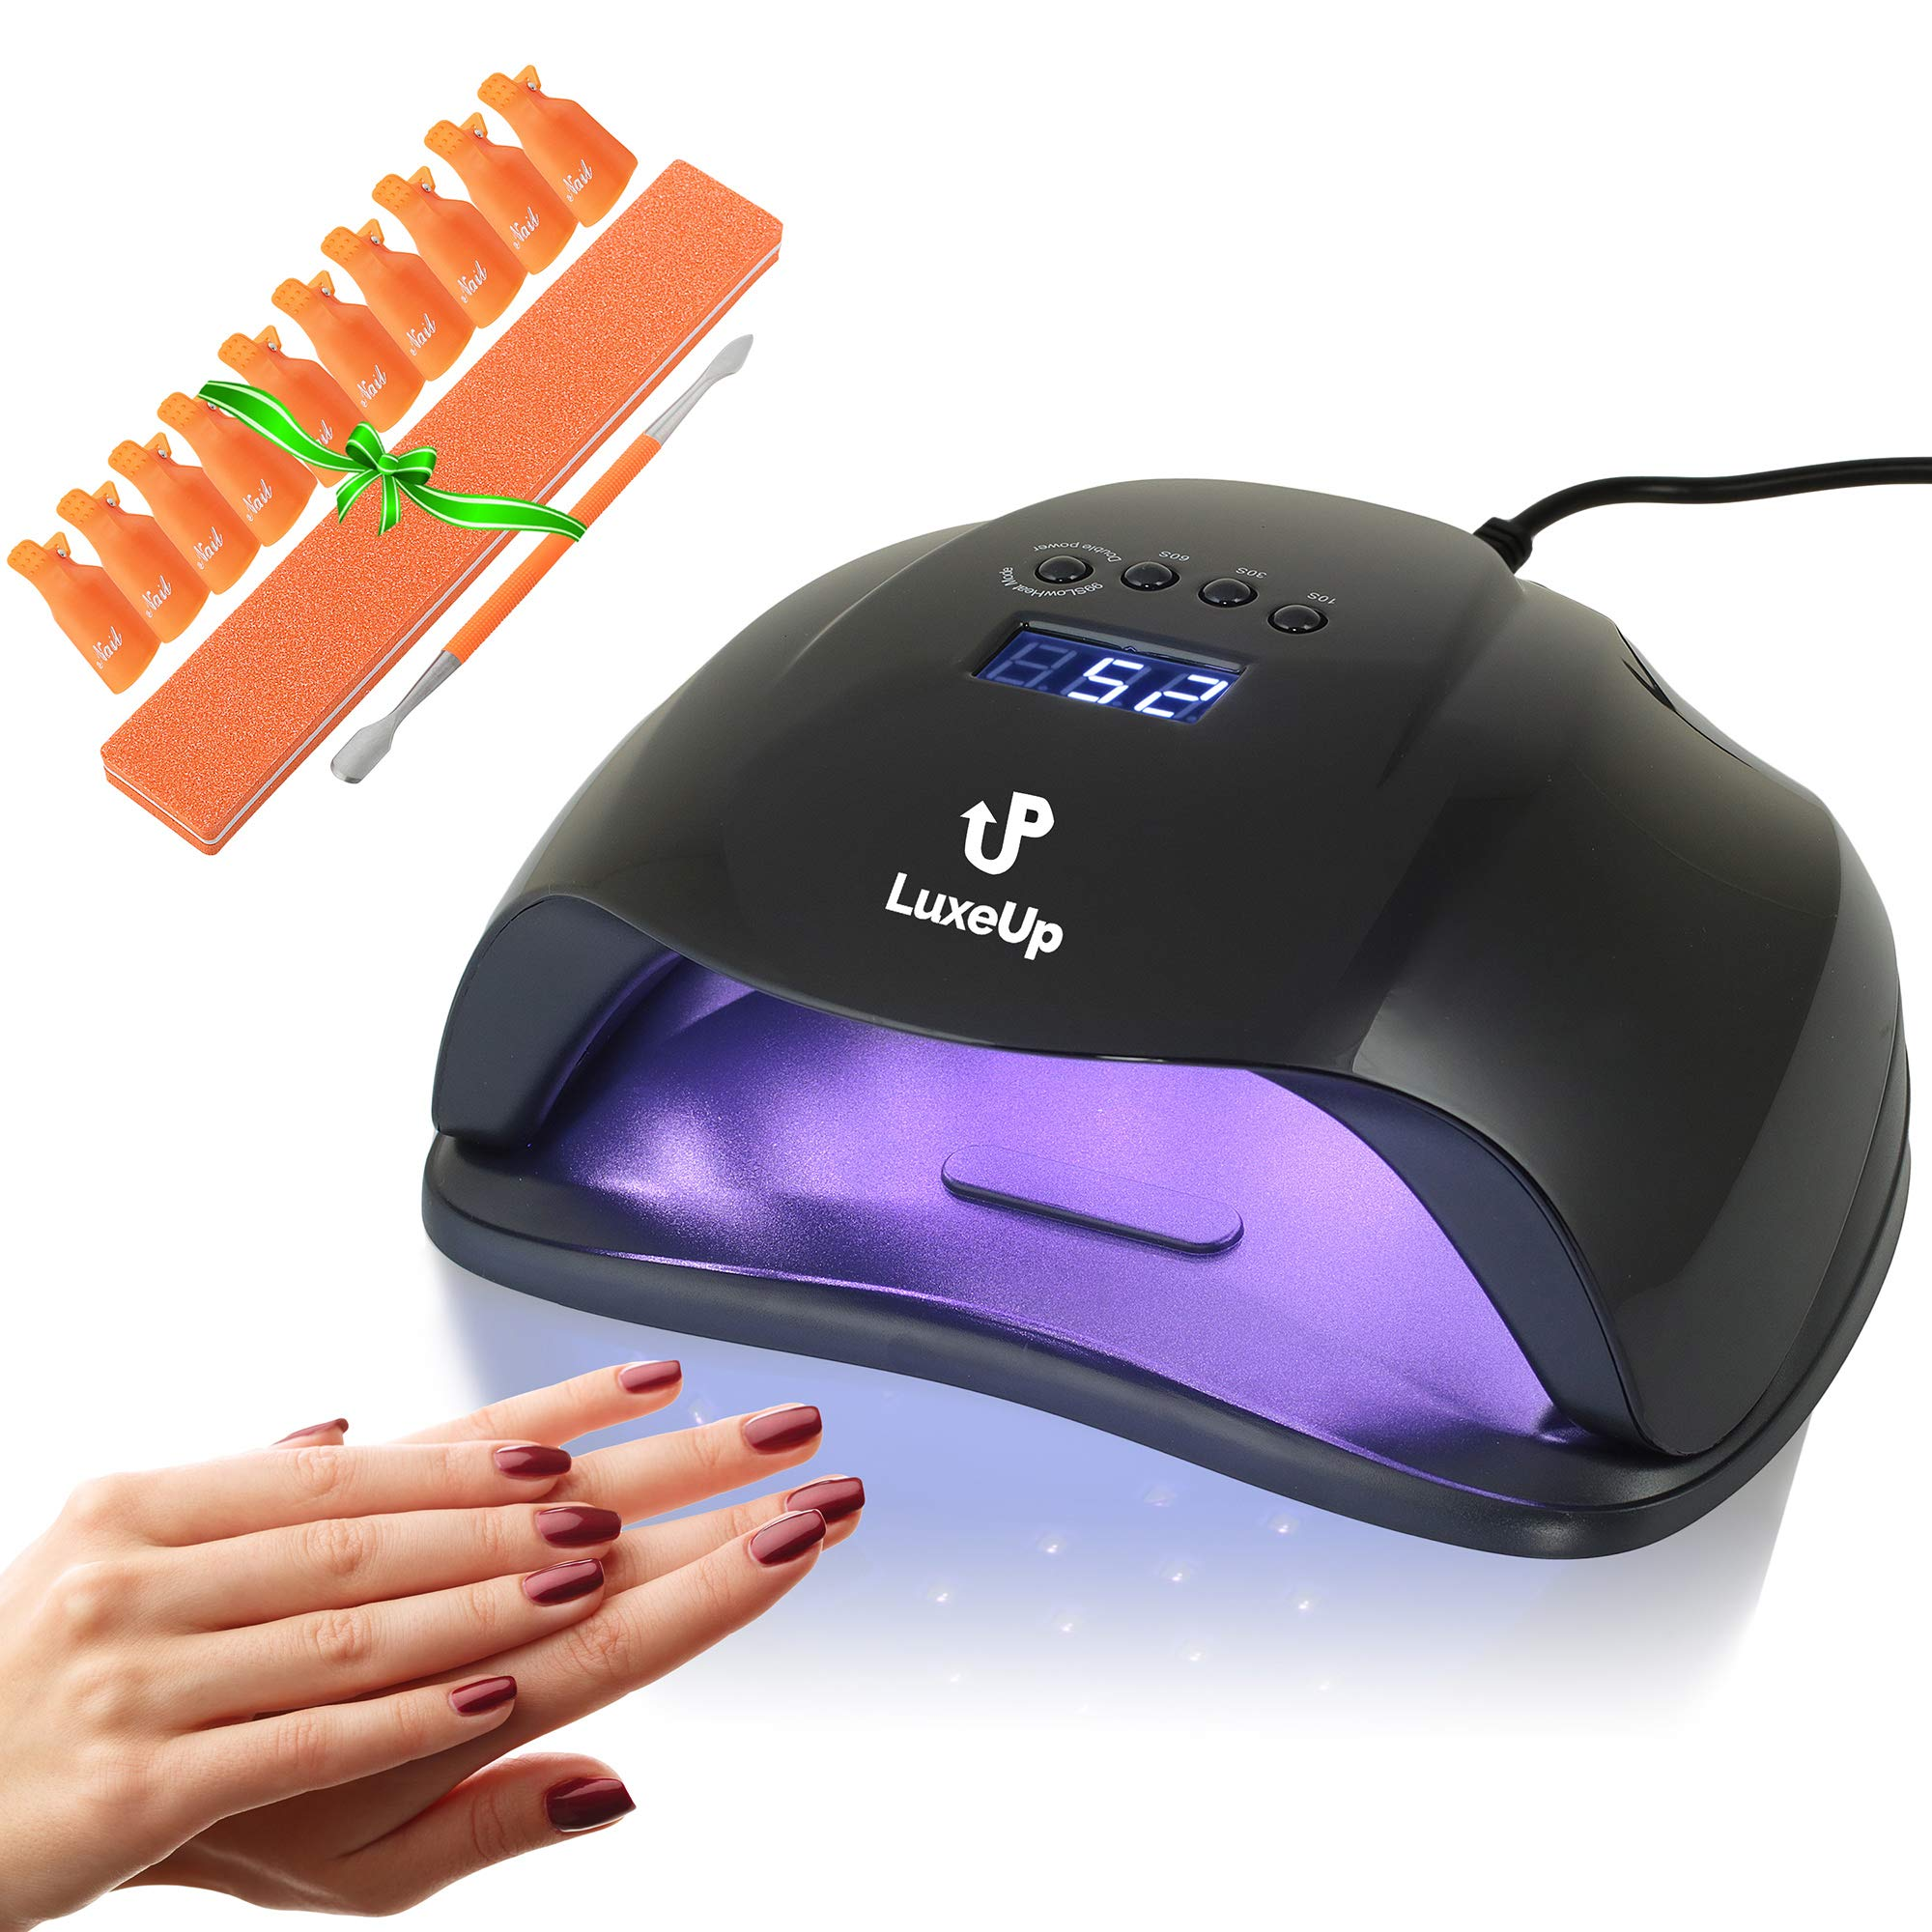 LuxeUp UV Nail Lamp Dryer 54W Upgraded Design | LED Curing Light Nail Art Lamp | Professional Dry Nail Lamp Set For Acrylic & Gel Polish (Black)